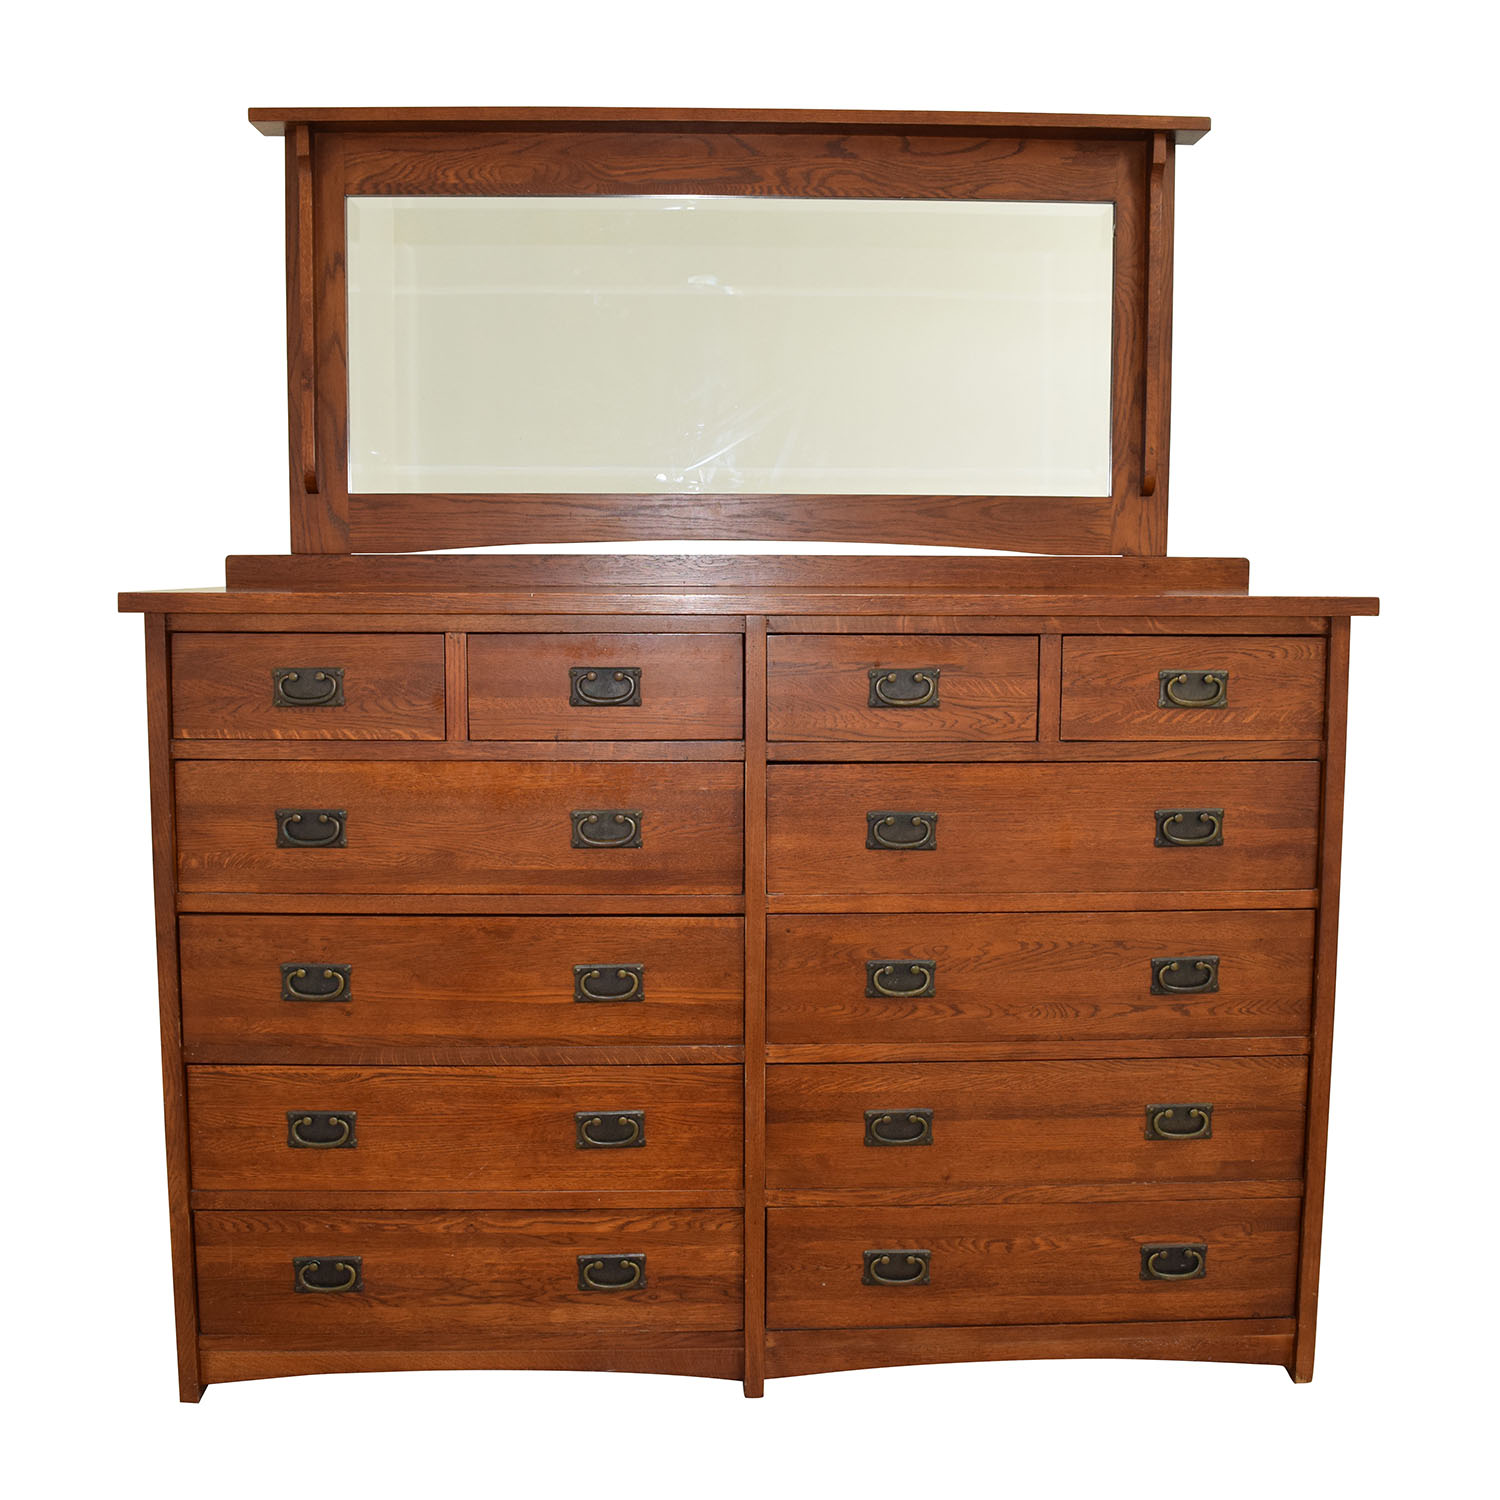 12 Drawer Chest Of Drawers 61 Off Mastercraft Furniture Mastercraft Collections Prairie Mission 12 Drawer Dresser Storage